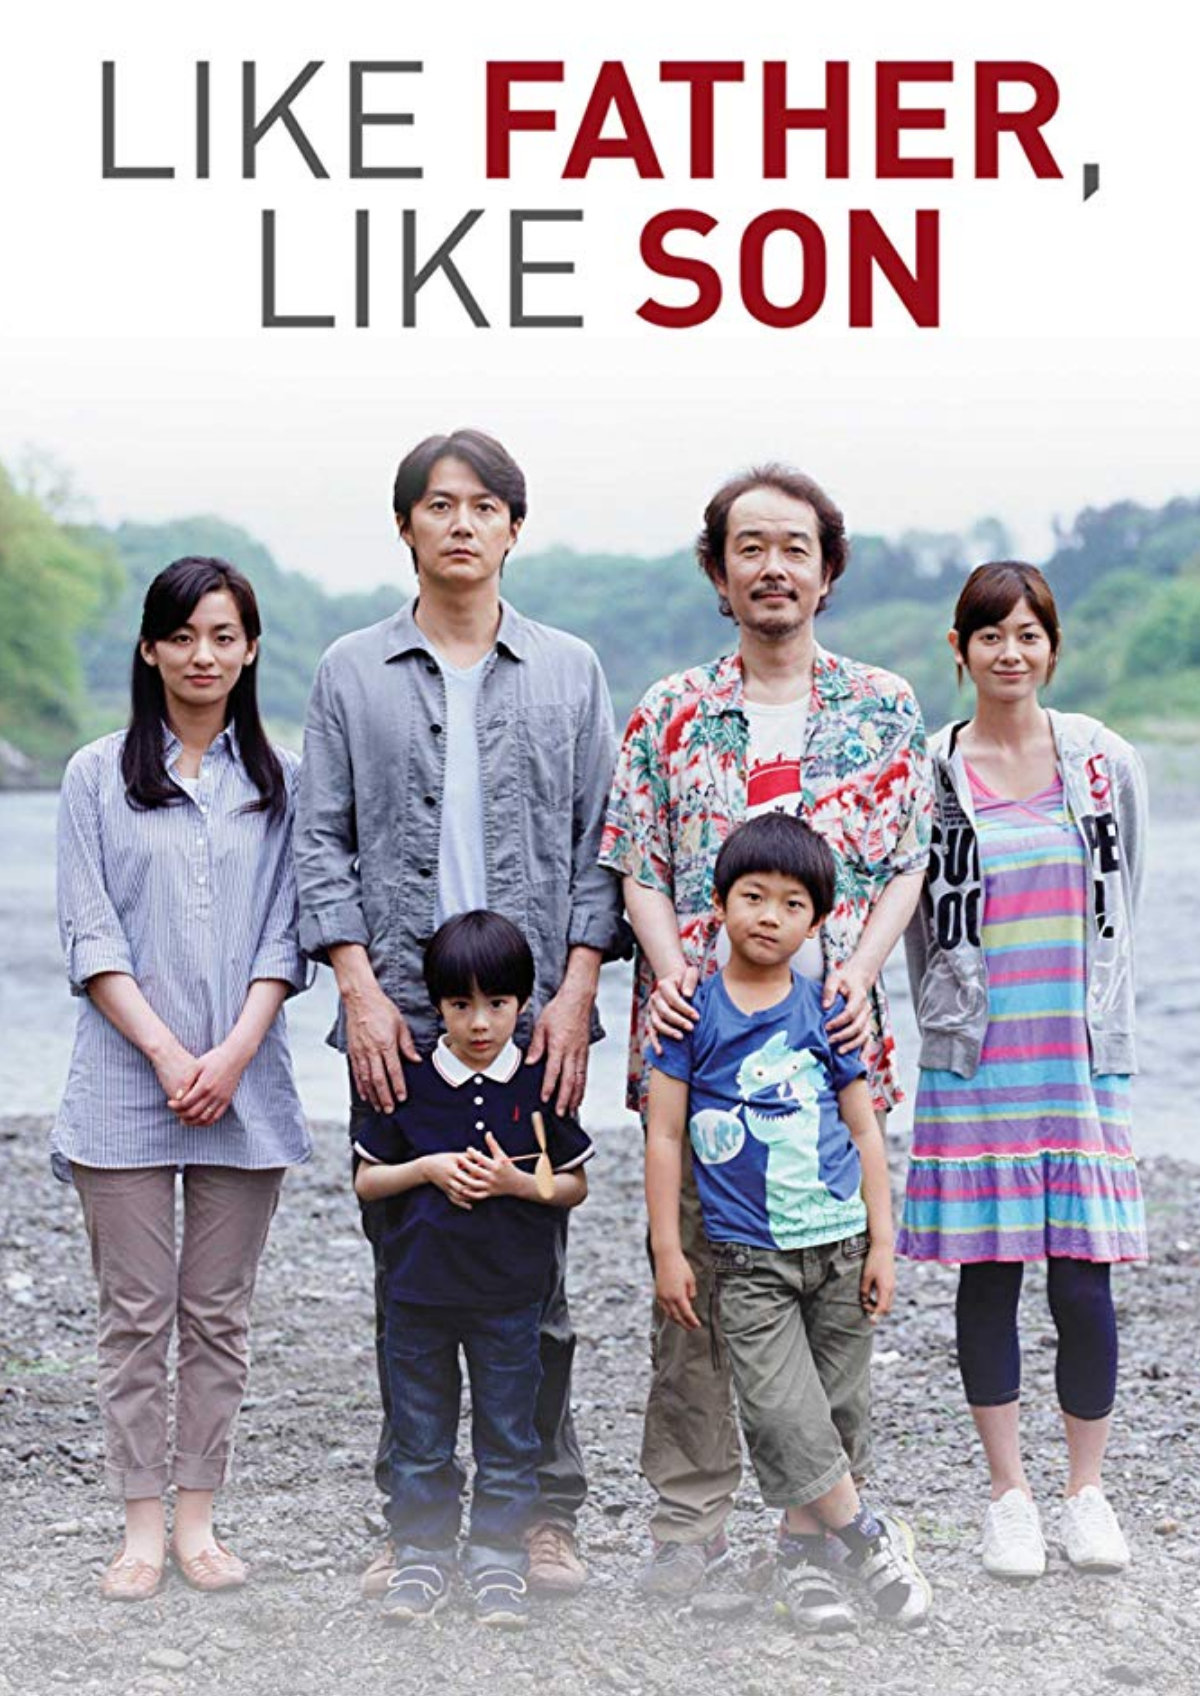 'Like Father, Like Son' movie poster